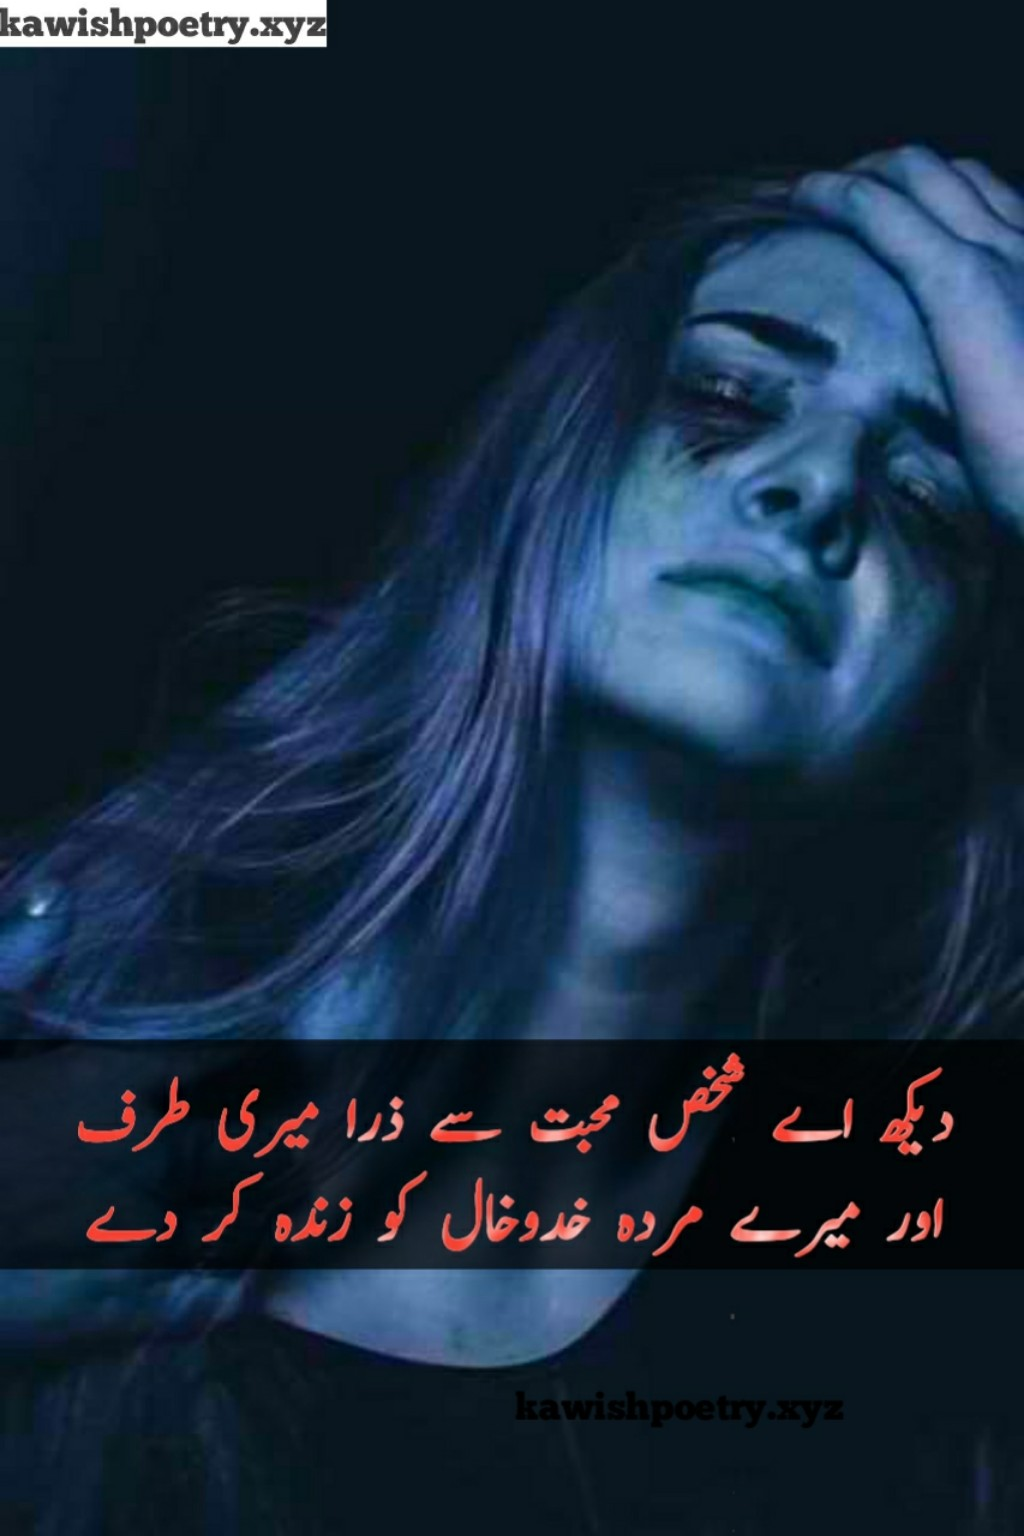 Sad Poetry In Urdu 2 Lines Sms